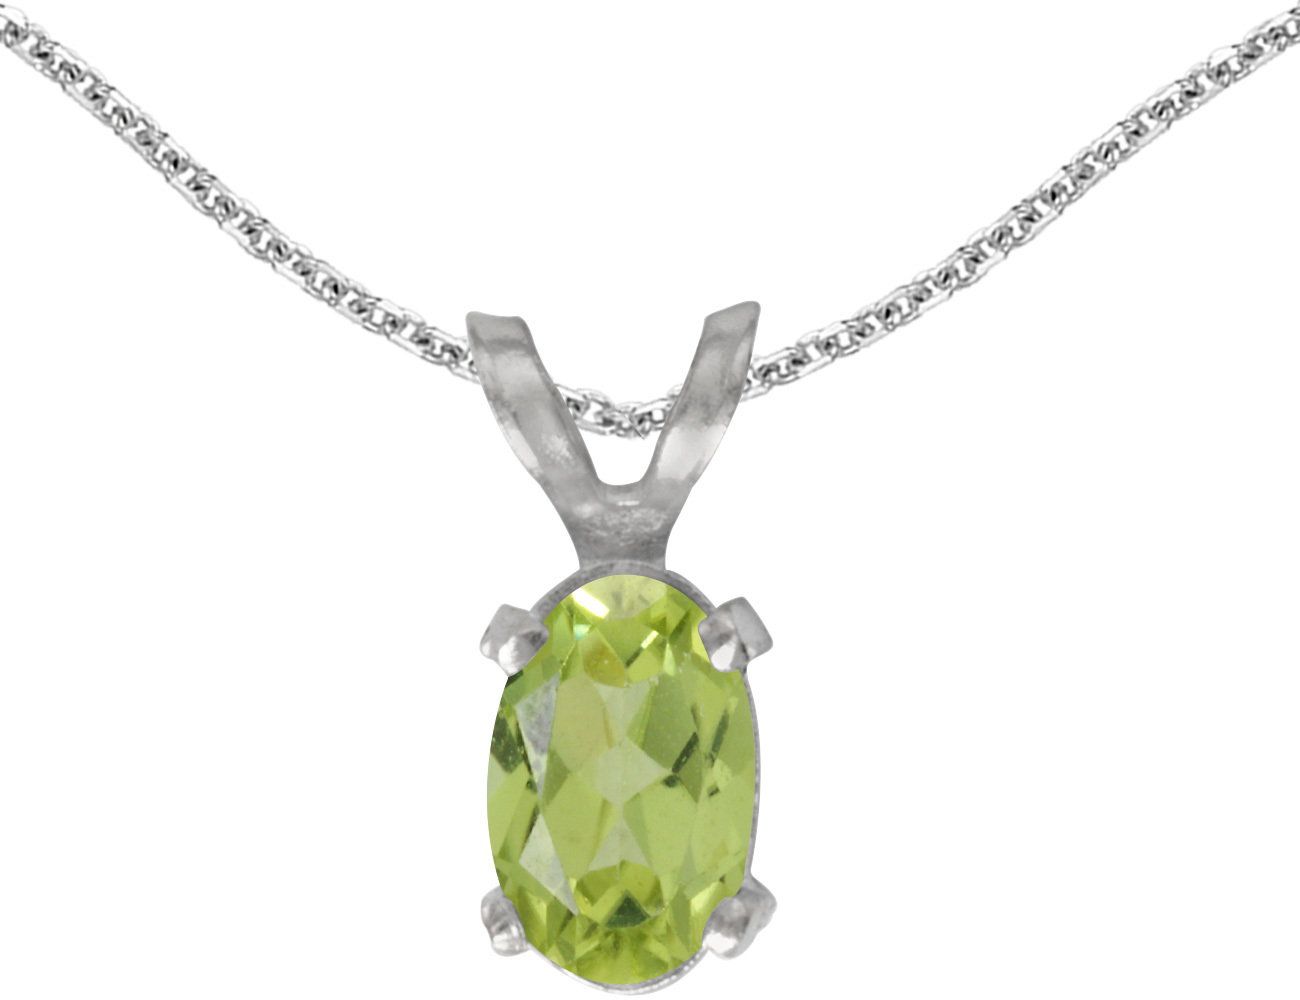 14k White Gold Oval Peridot Pendant (Chain NOT included)